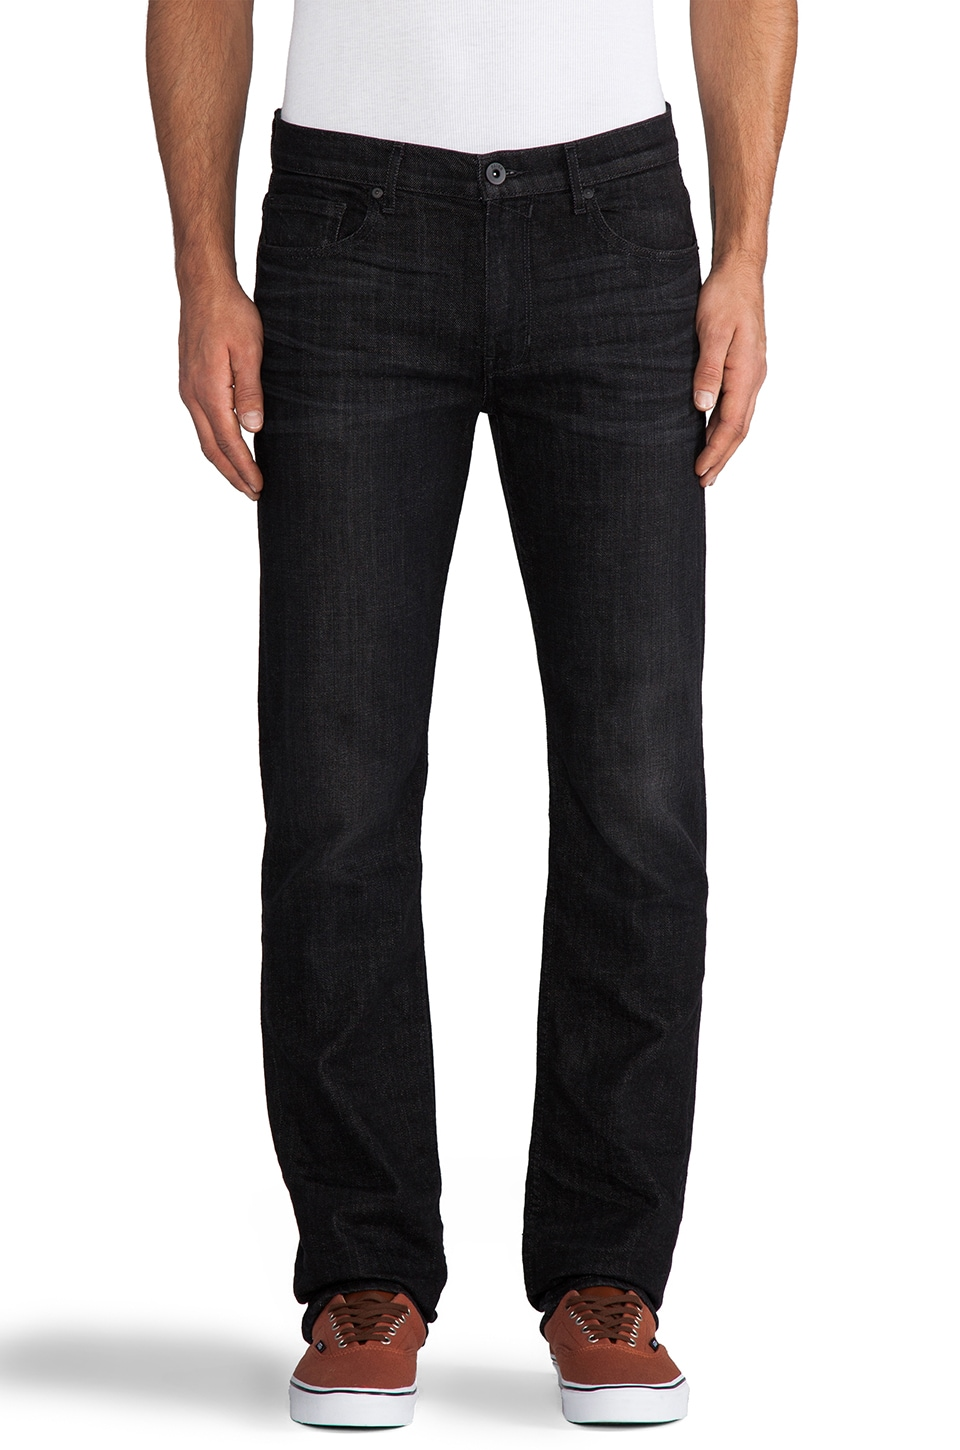 Paige Denim Normandie Slim Straight in Coal Miner